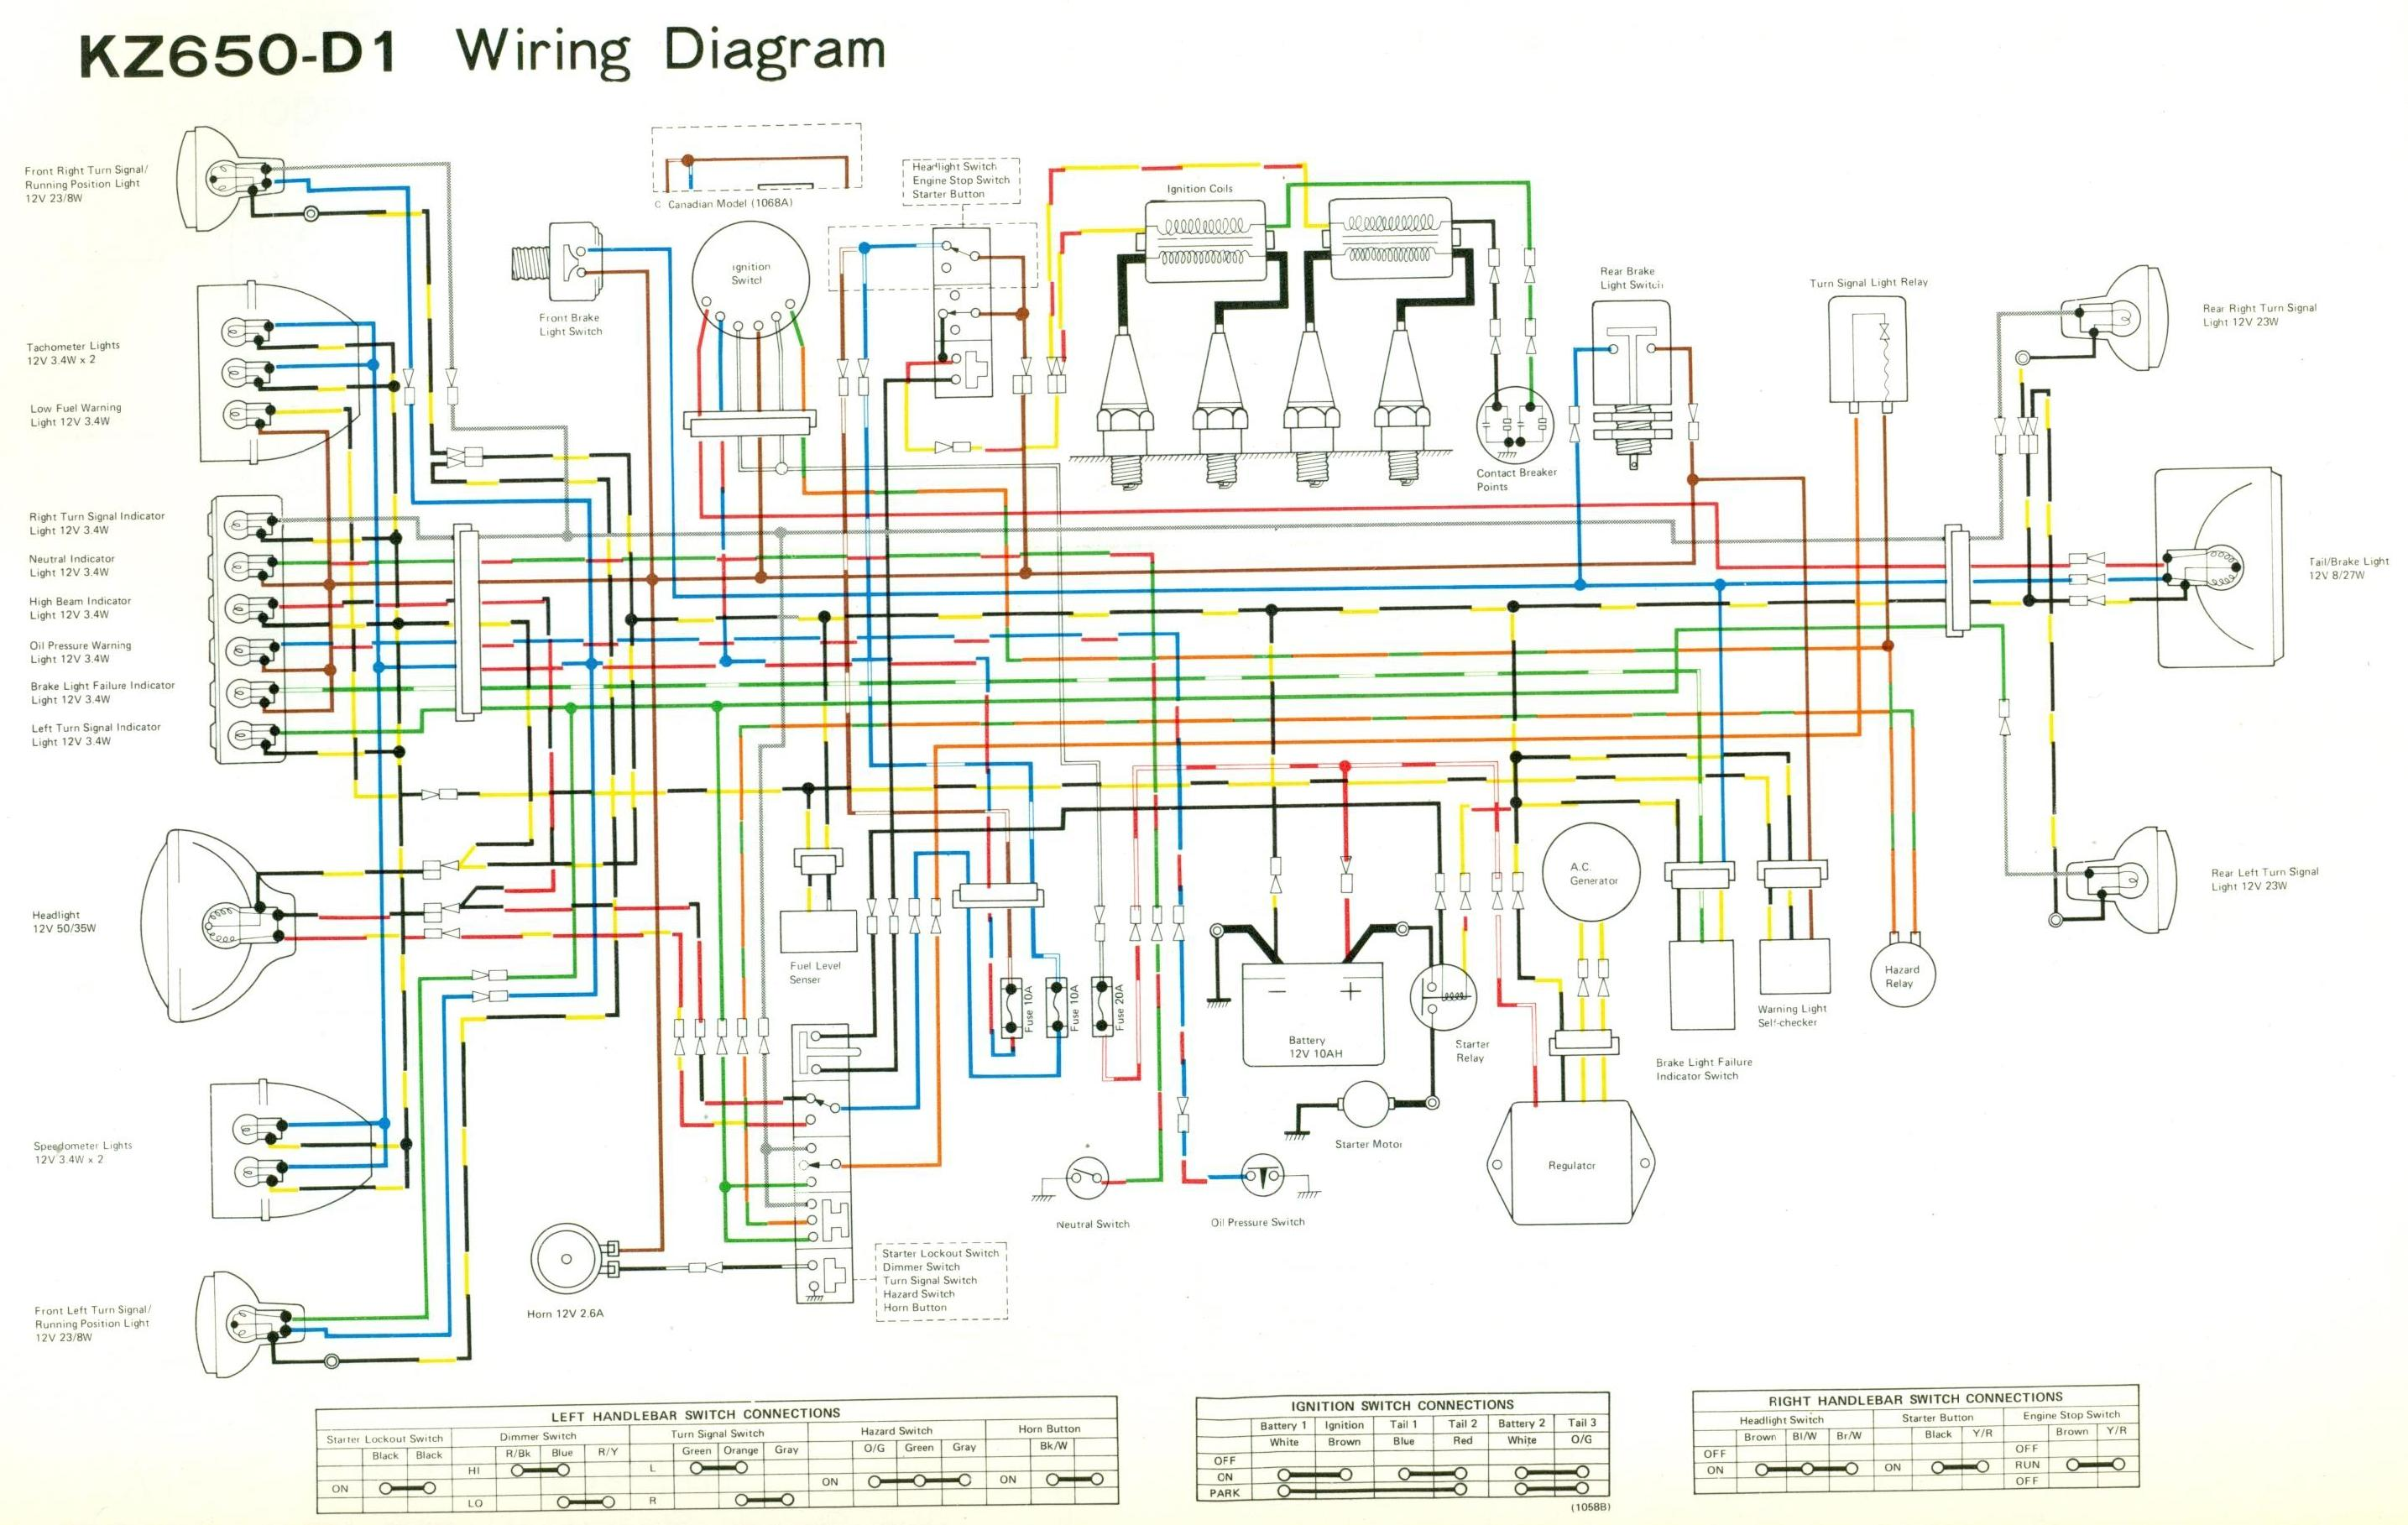 Wiring Diagram For 2003 Kawasaki 650 Prairie - Wiring Diagram point  pure-rotate - pure-rotate.lauragiustibijoux.it | 2005 Kawasaki Brute Force 750 Wiring Diagram |  | Laura Giusti Bijoux